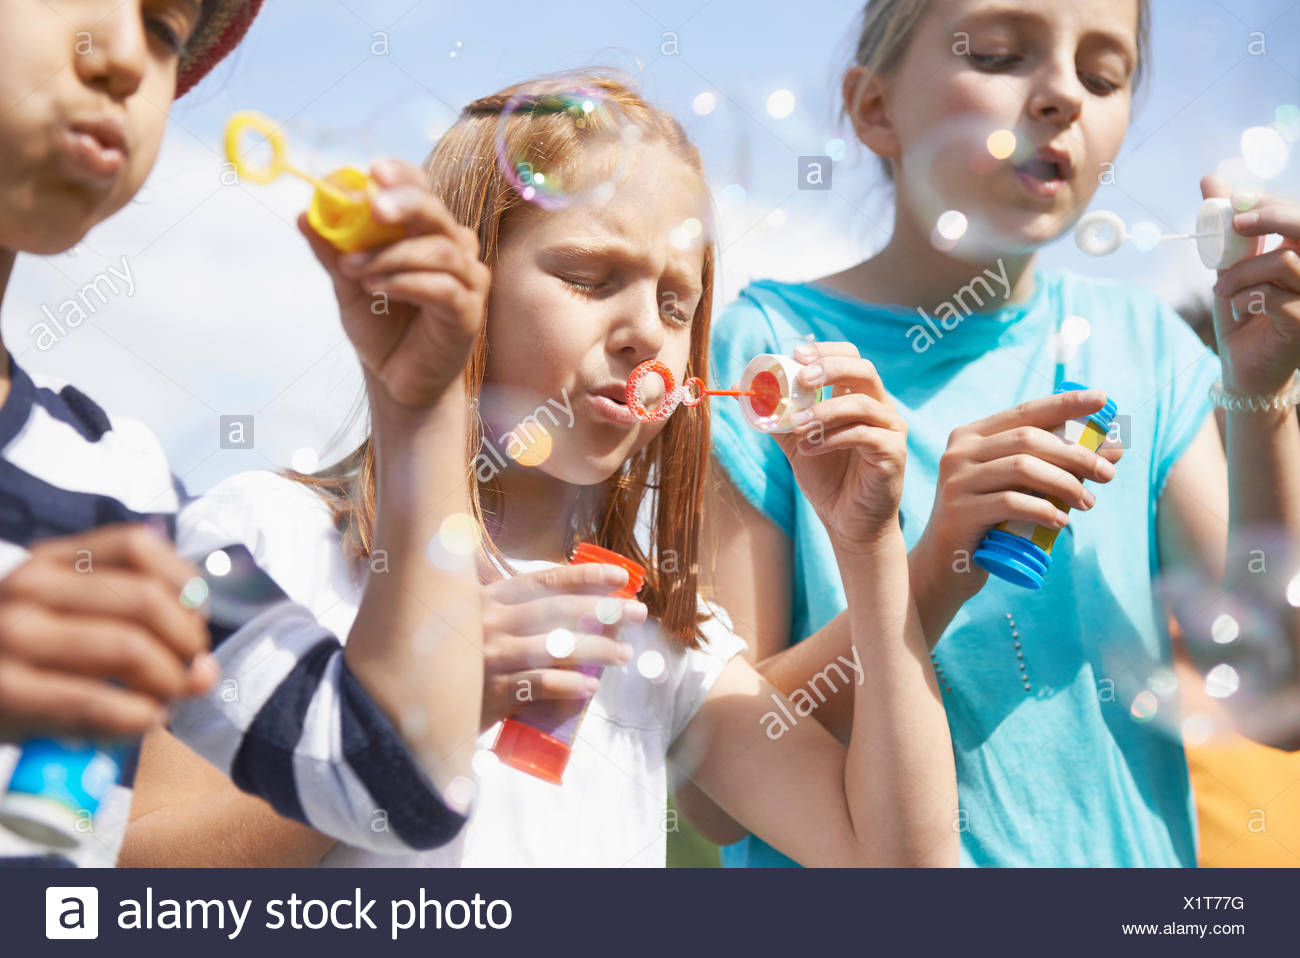 Girls blowing bubbles with bubble wands, Bavaria, Germany - Stock Image